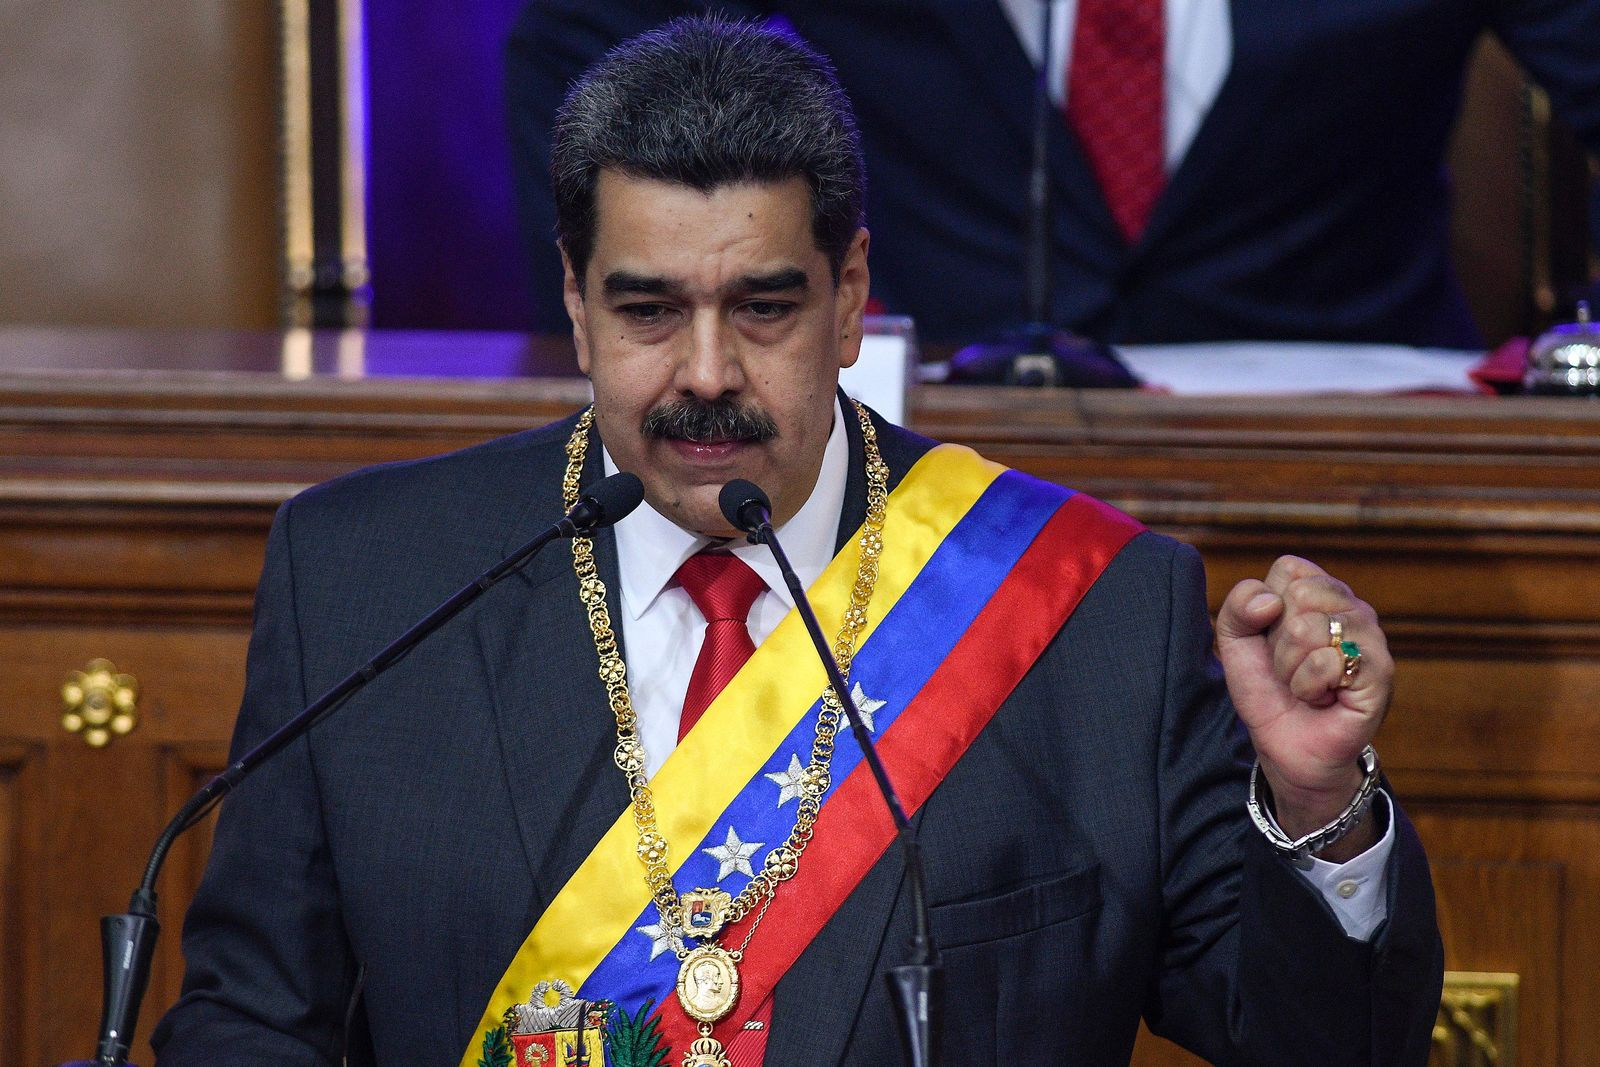 Venezuelan President Nicolas Maduro gives his annual address to the nation before members of the Constituent Assembly on the grounds of the National Assembly in Caracas, Venezuela, Tuesday, Jan. 14, 2020. (AP Photo/Matias Delacroix)